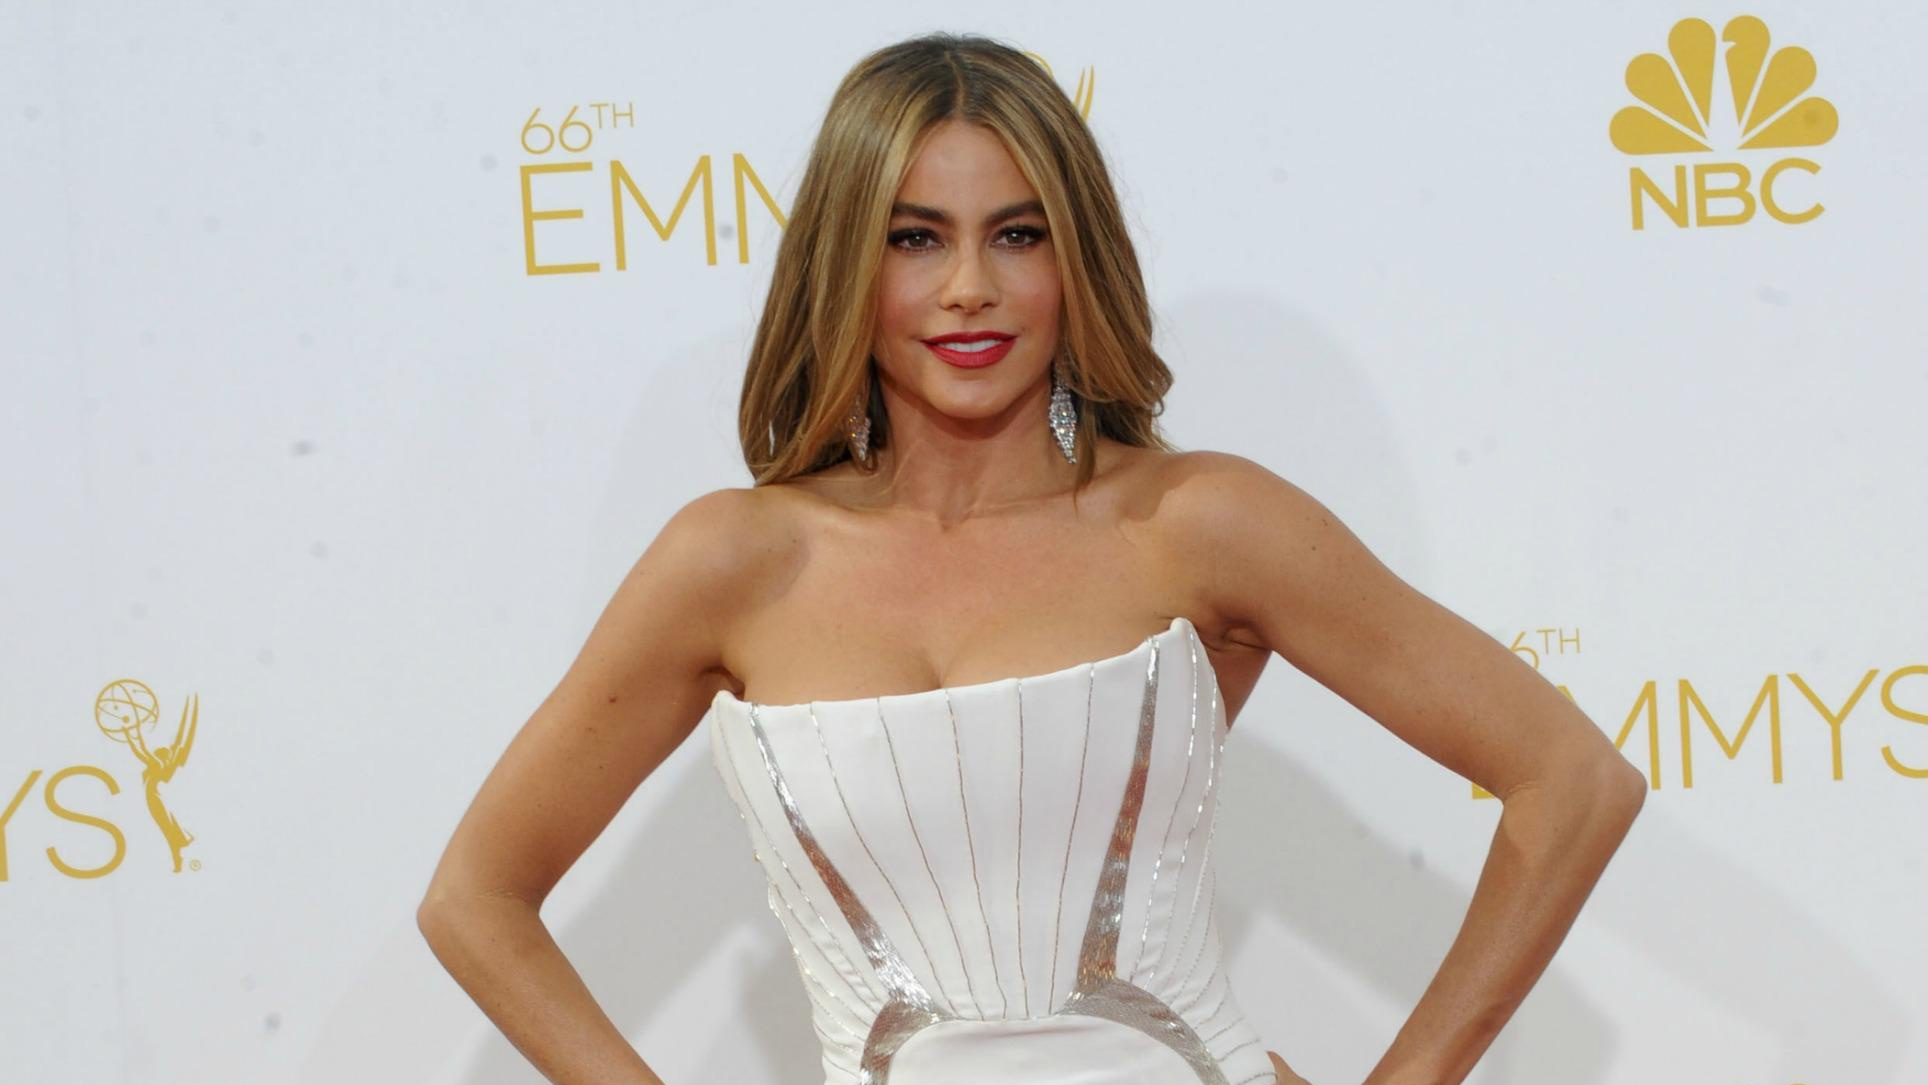 Did the Emmys take it too far with Sofia Vergara bit, post-Beyoncé feminist performance?